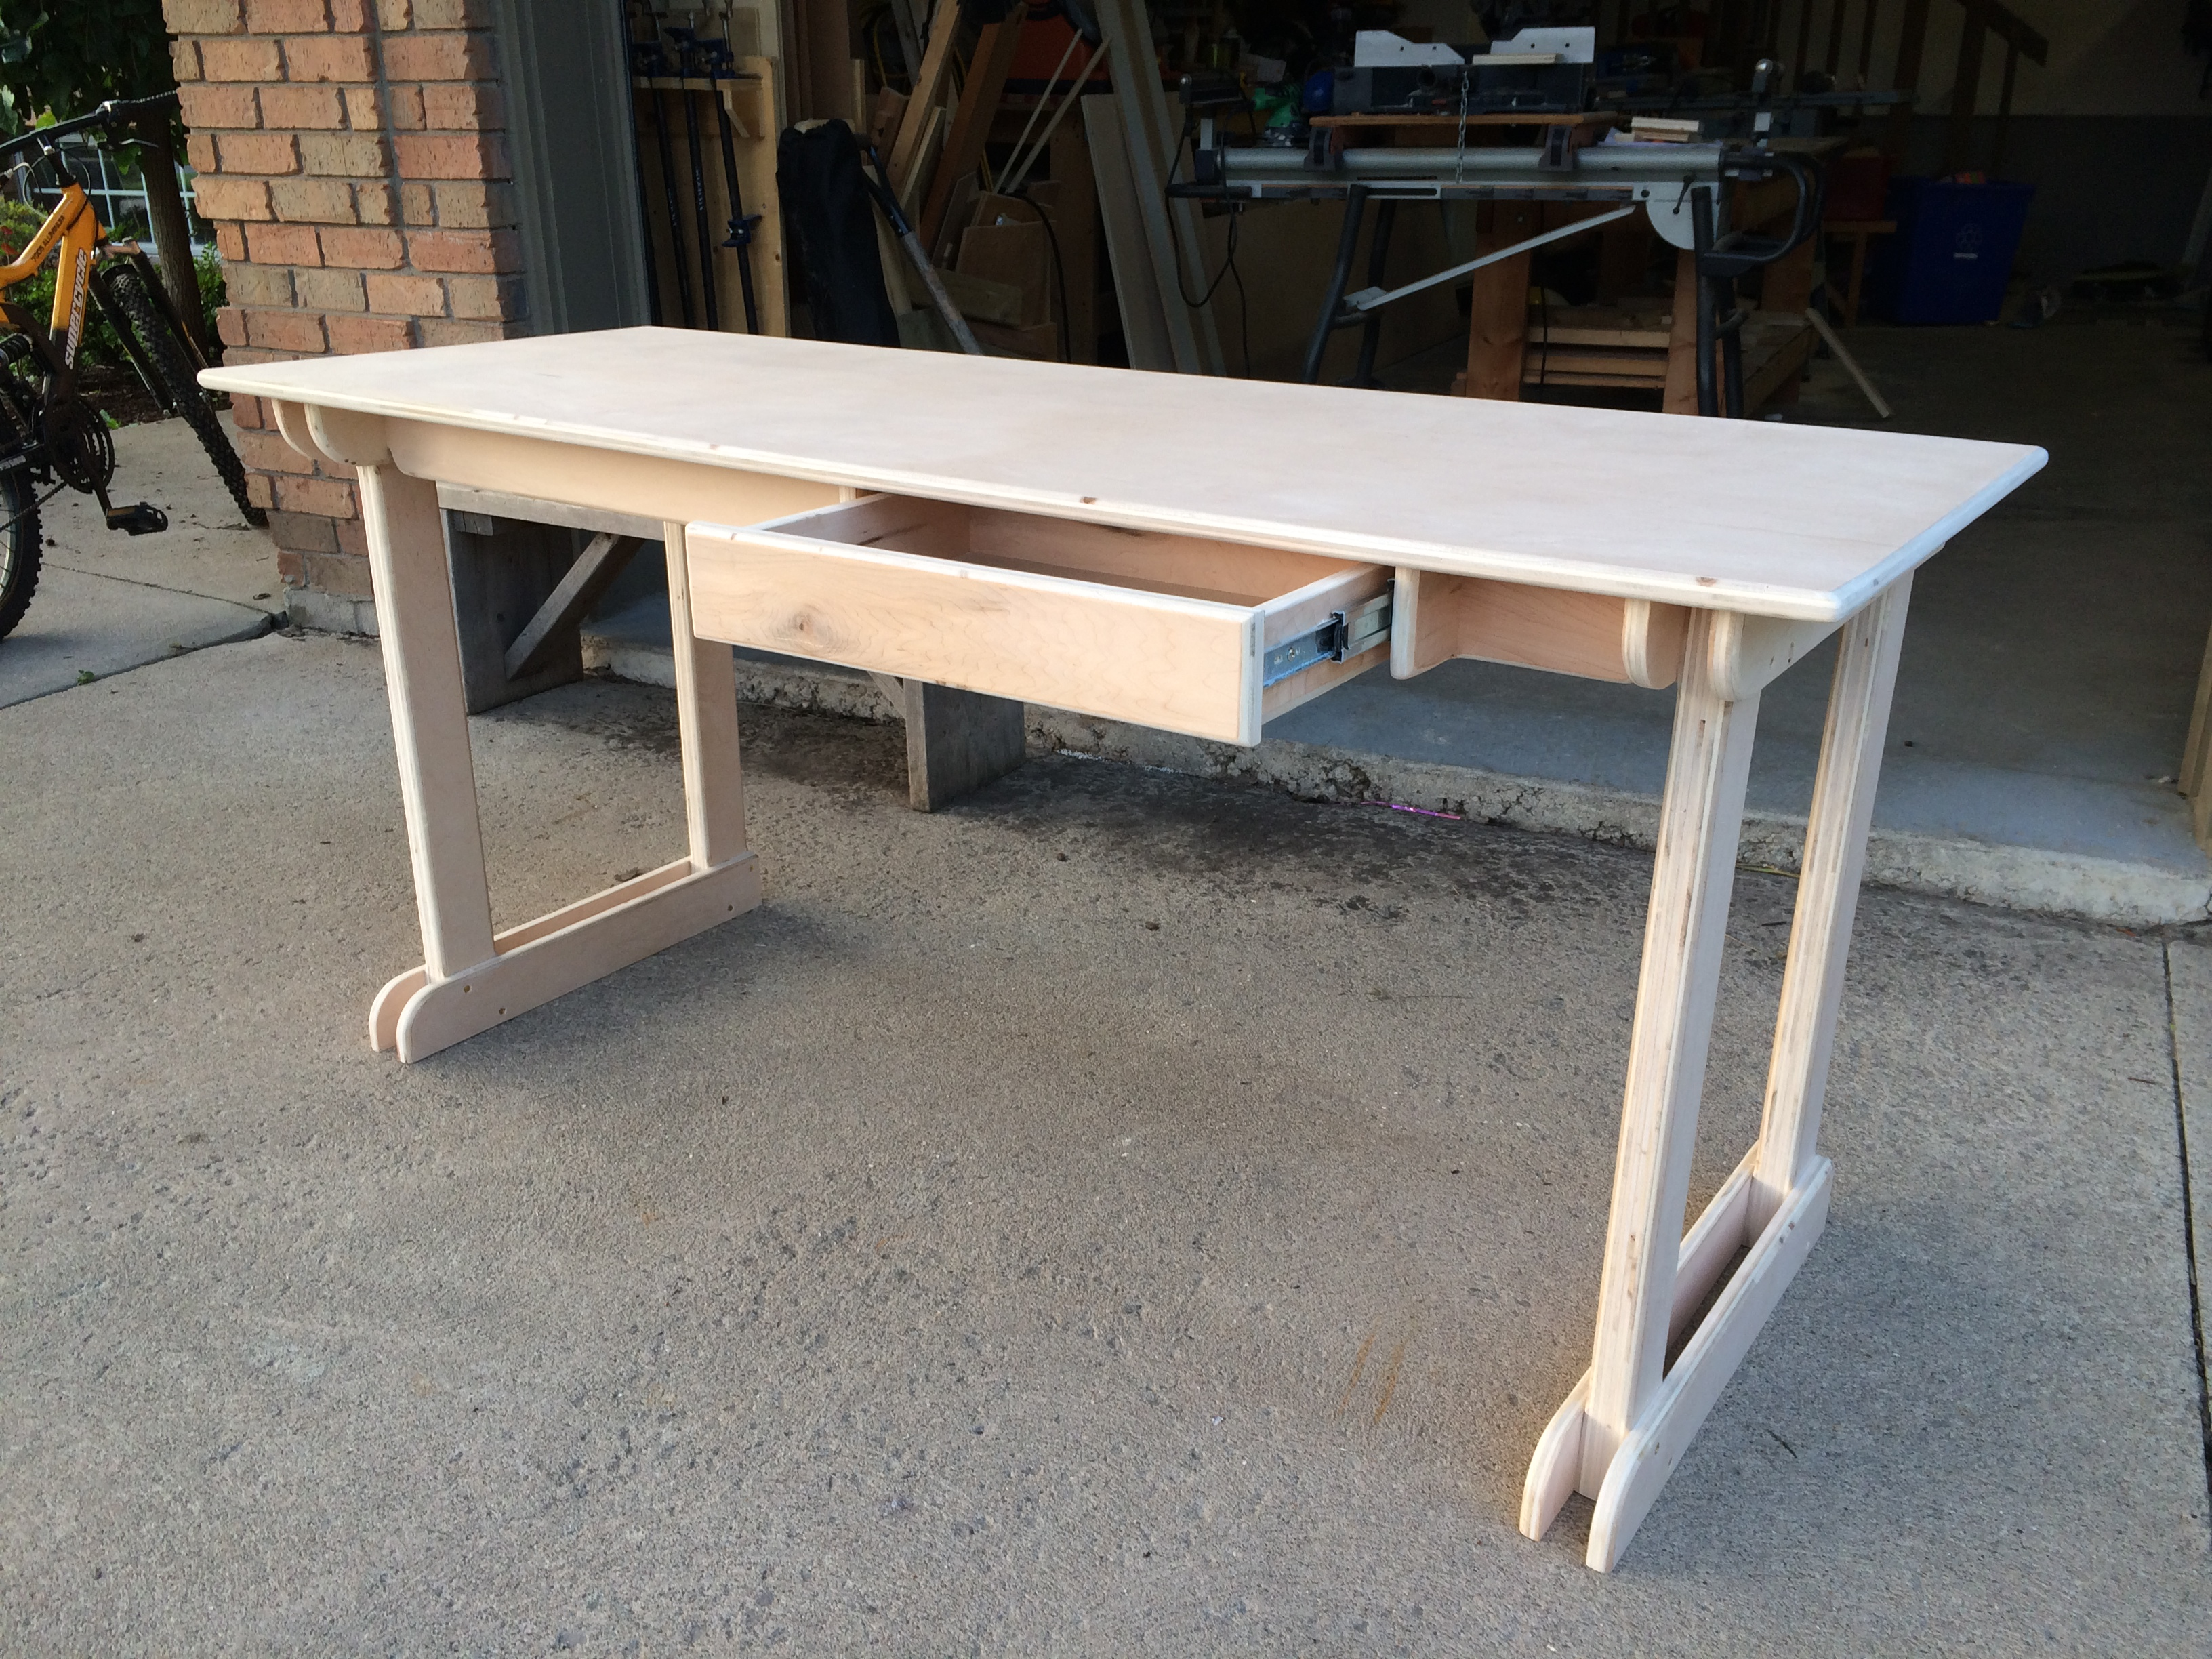 Ana white plywood student desk diy projects for Diy plywood dresser